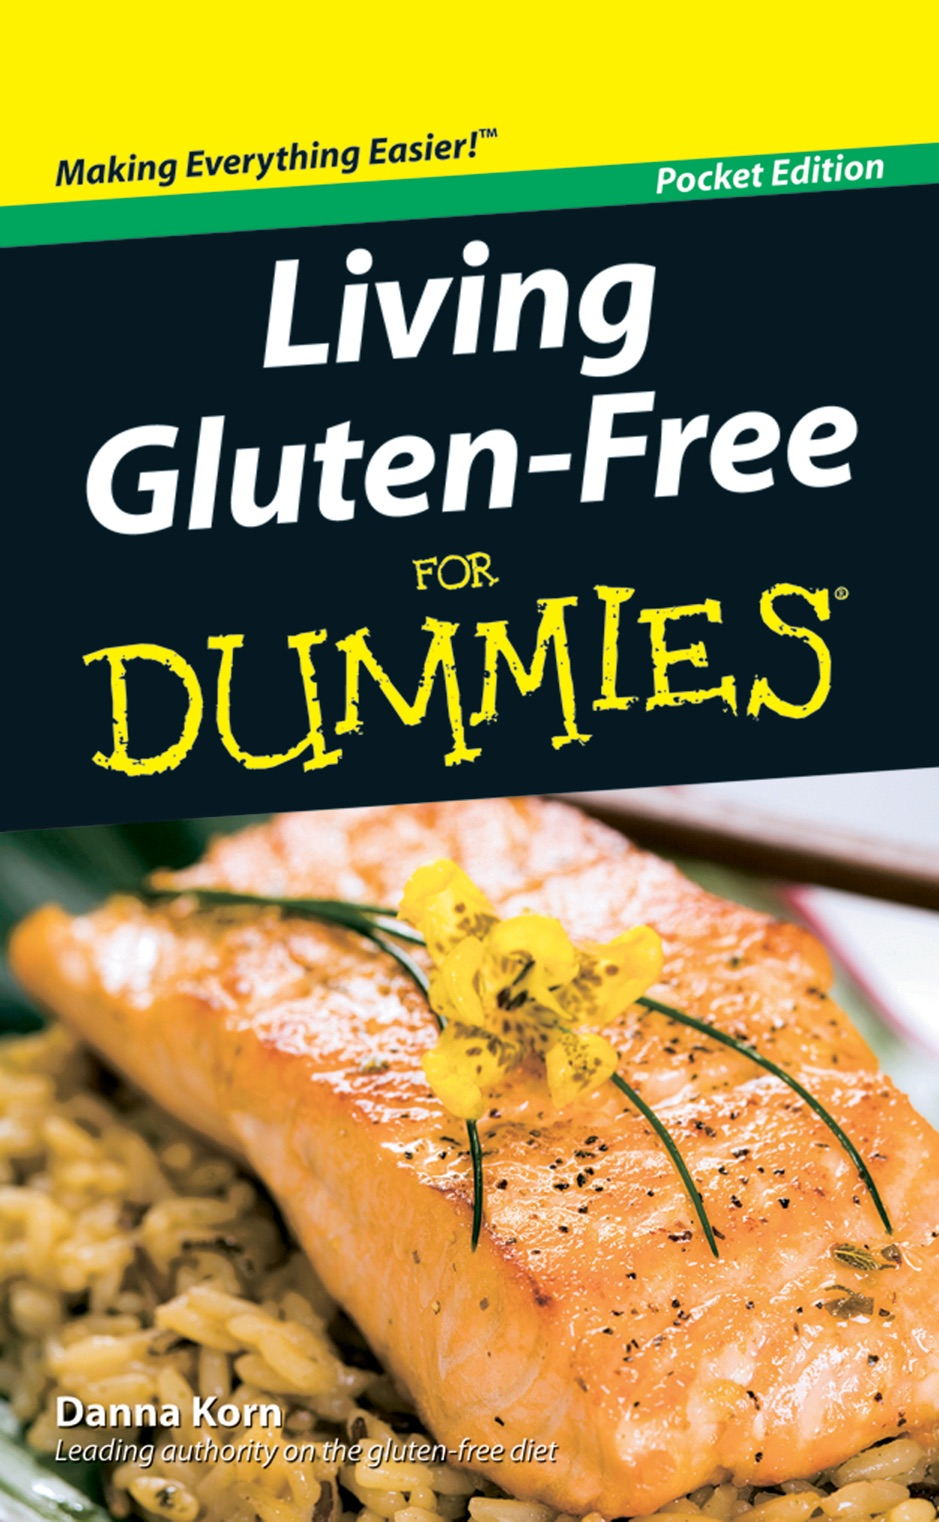 ‎Living Gluten-Free For Dummies